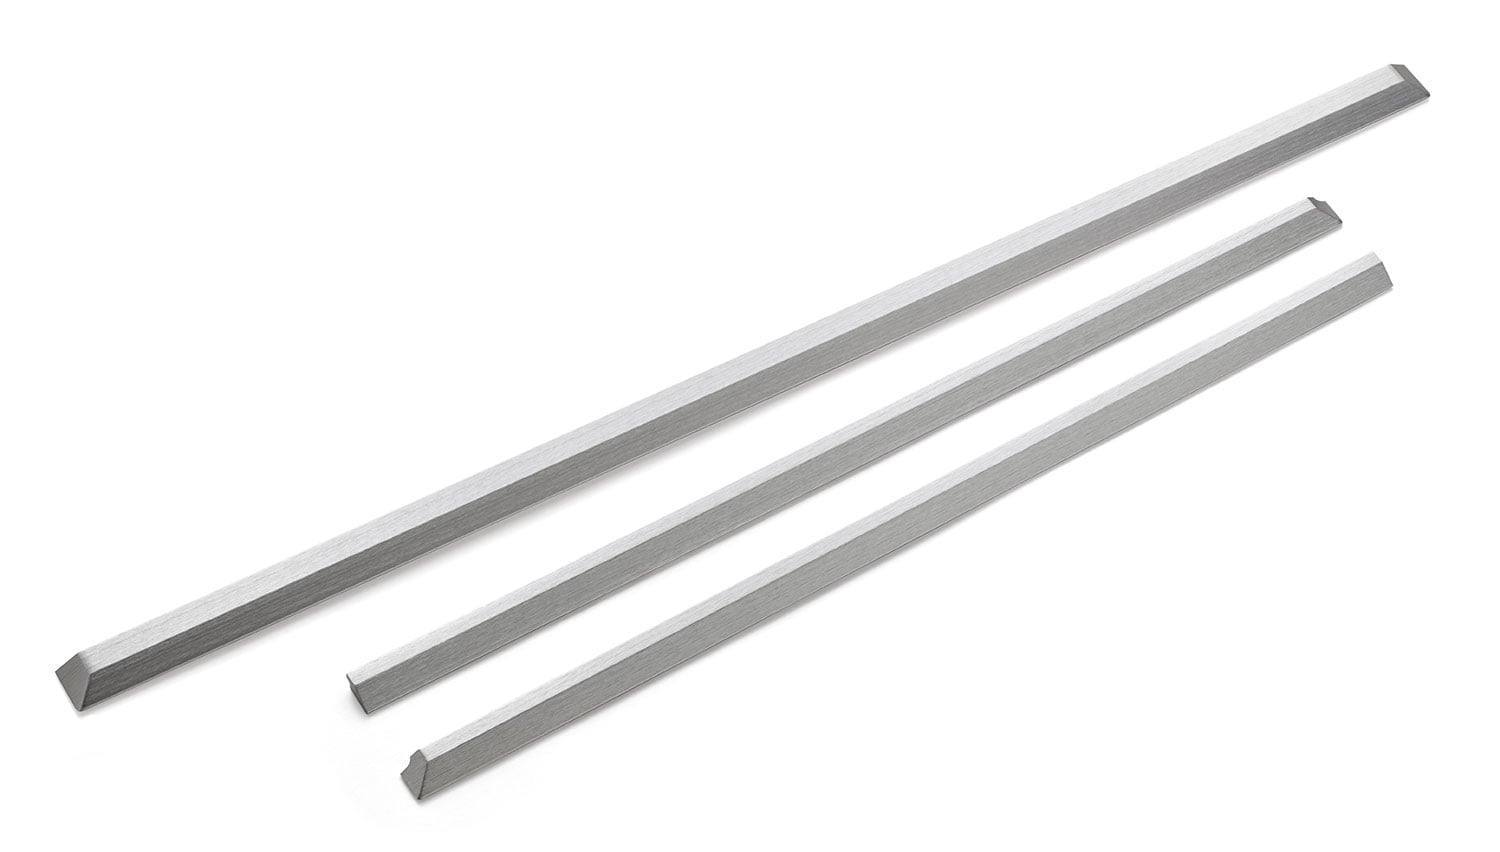 Whirlpool Stainless Steel Range Trim Kit